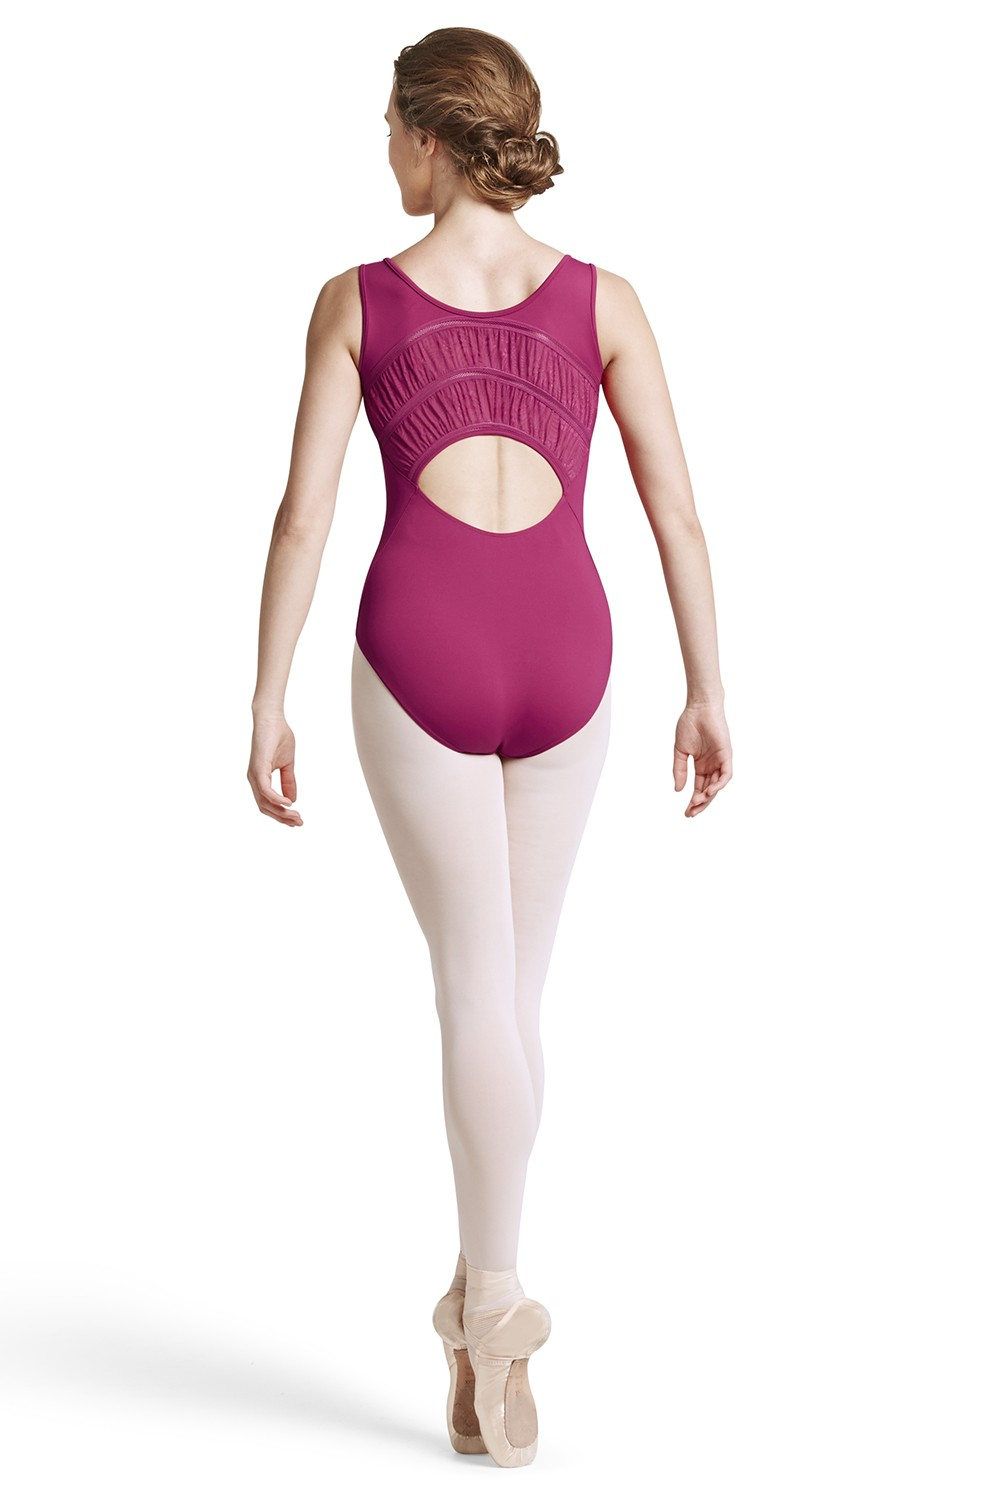 Dinakar Women's Dance Leotards